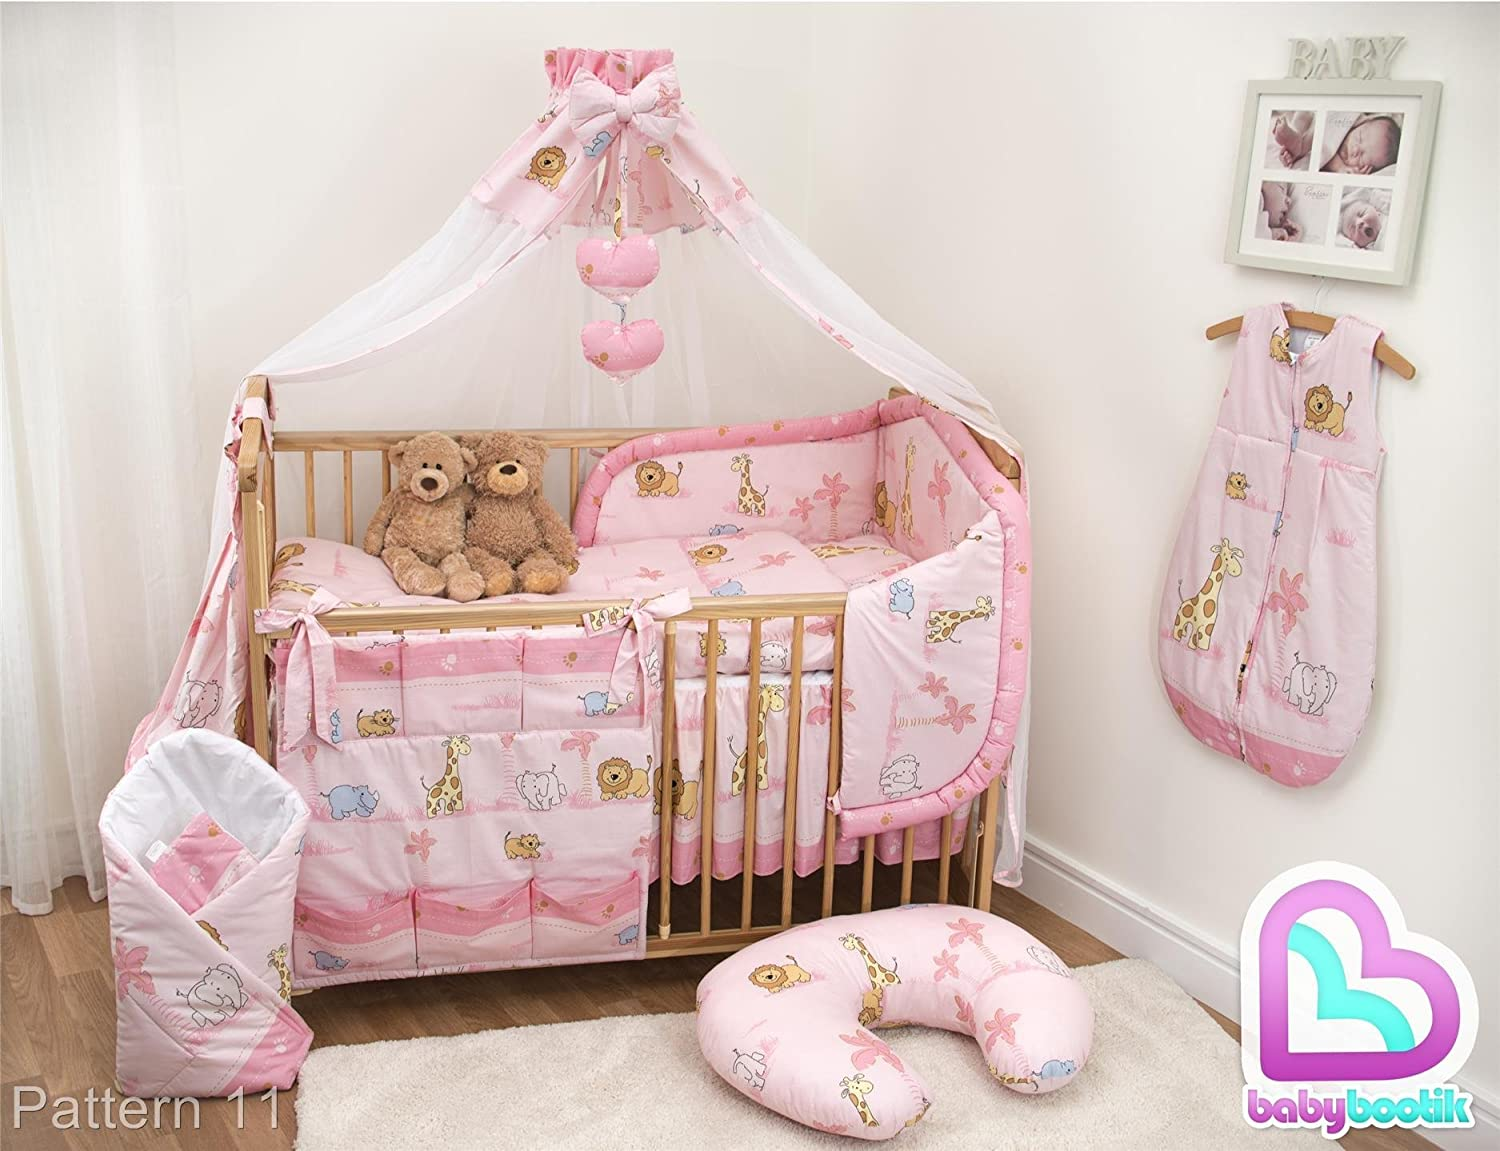 10 Piece Cot Bedding Set with Safety Padded Bumper (Fits Cot 120x60 cm, Pattern 2) BabyComfort